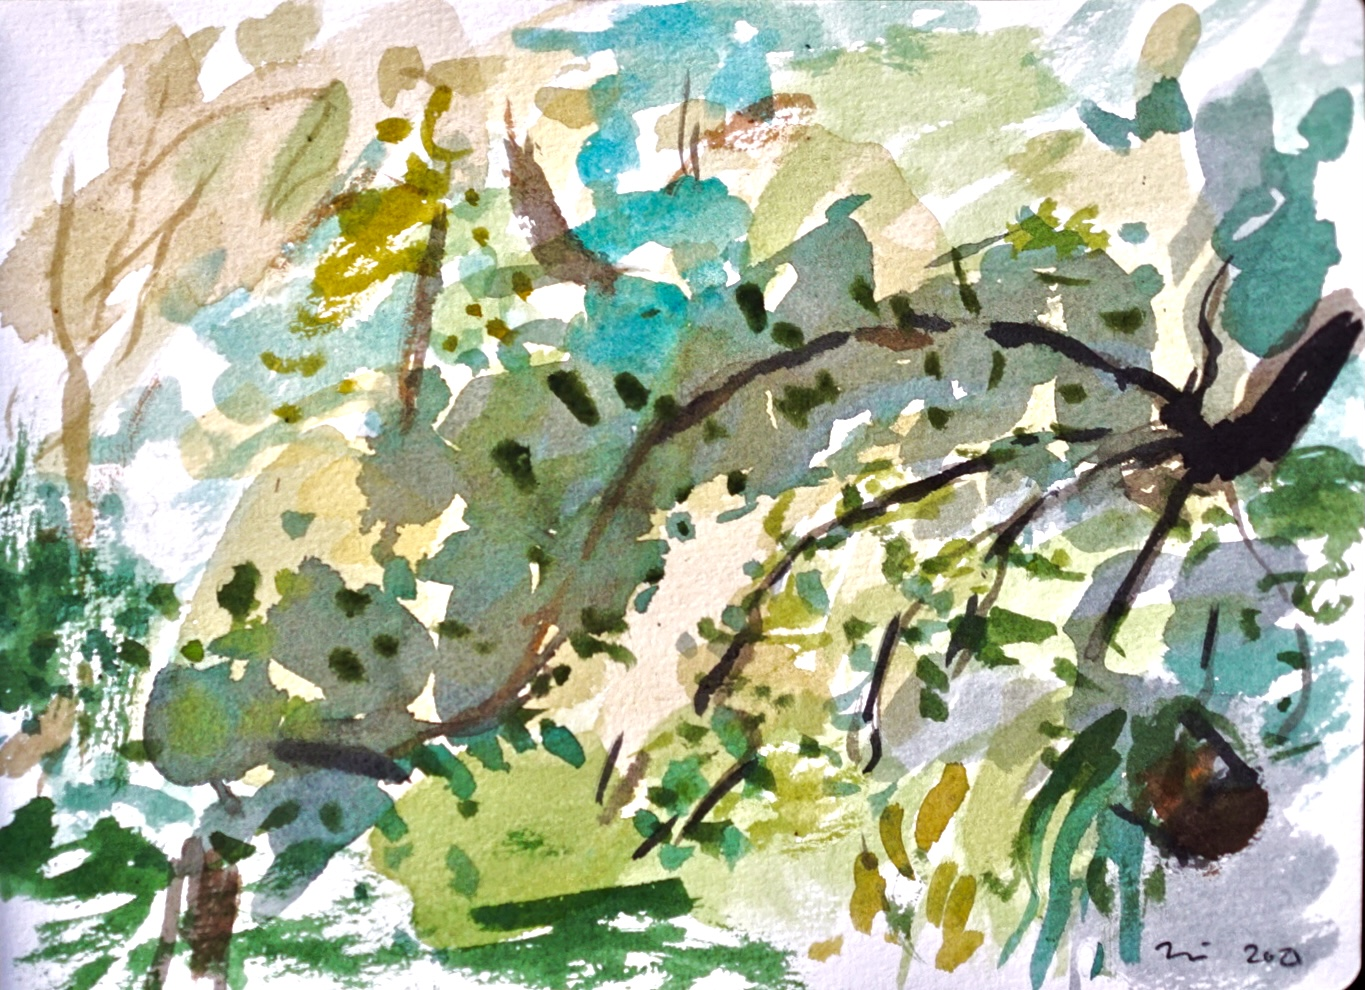 Water Color painting in a Chinese style of Fern Dell park in Los Angeles California